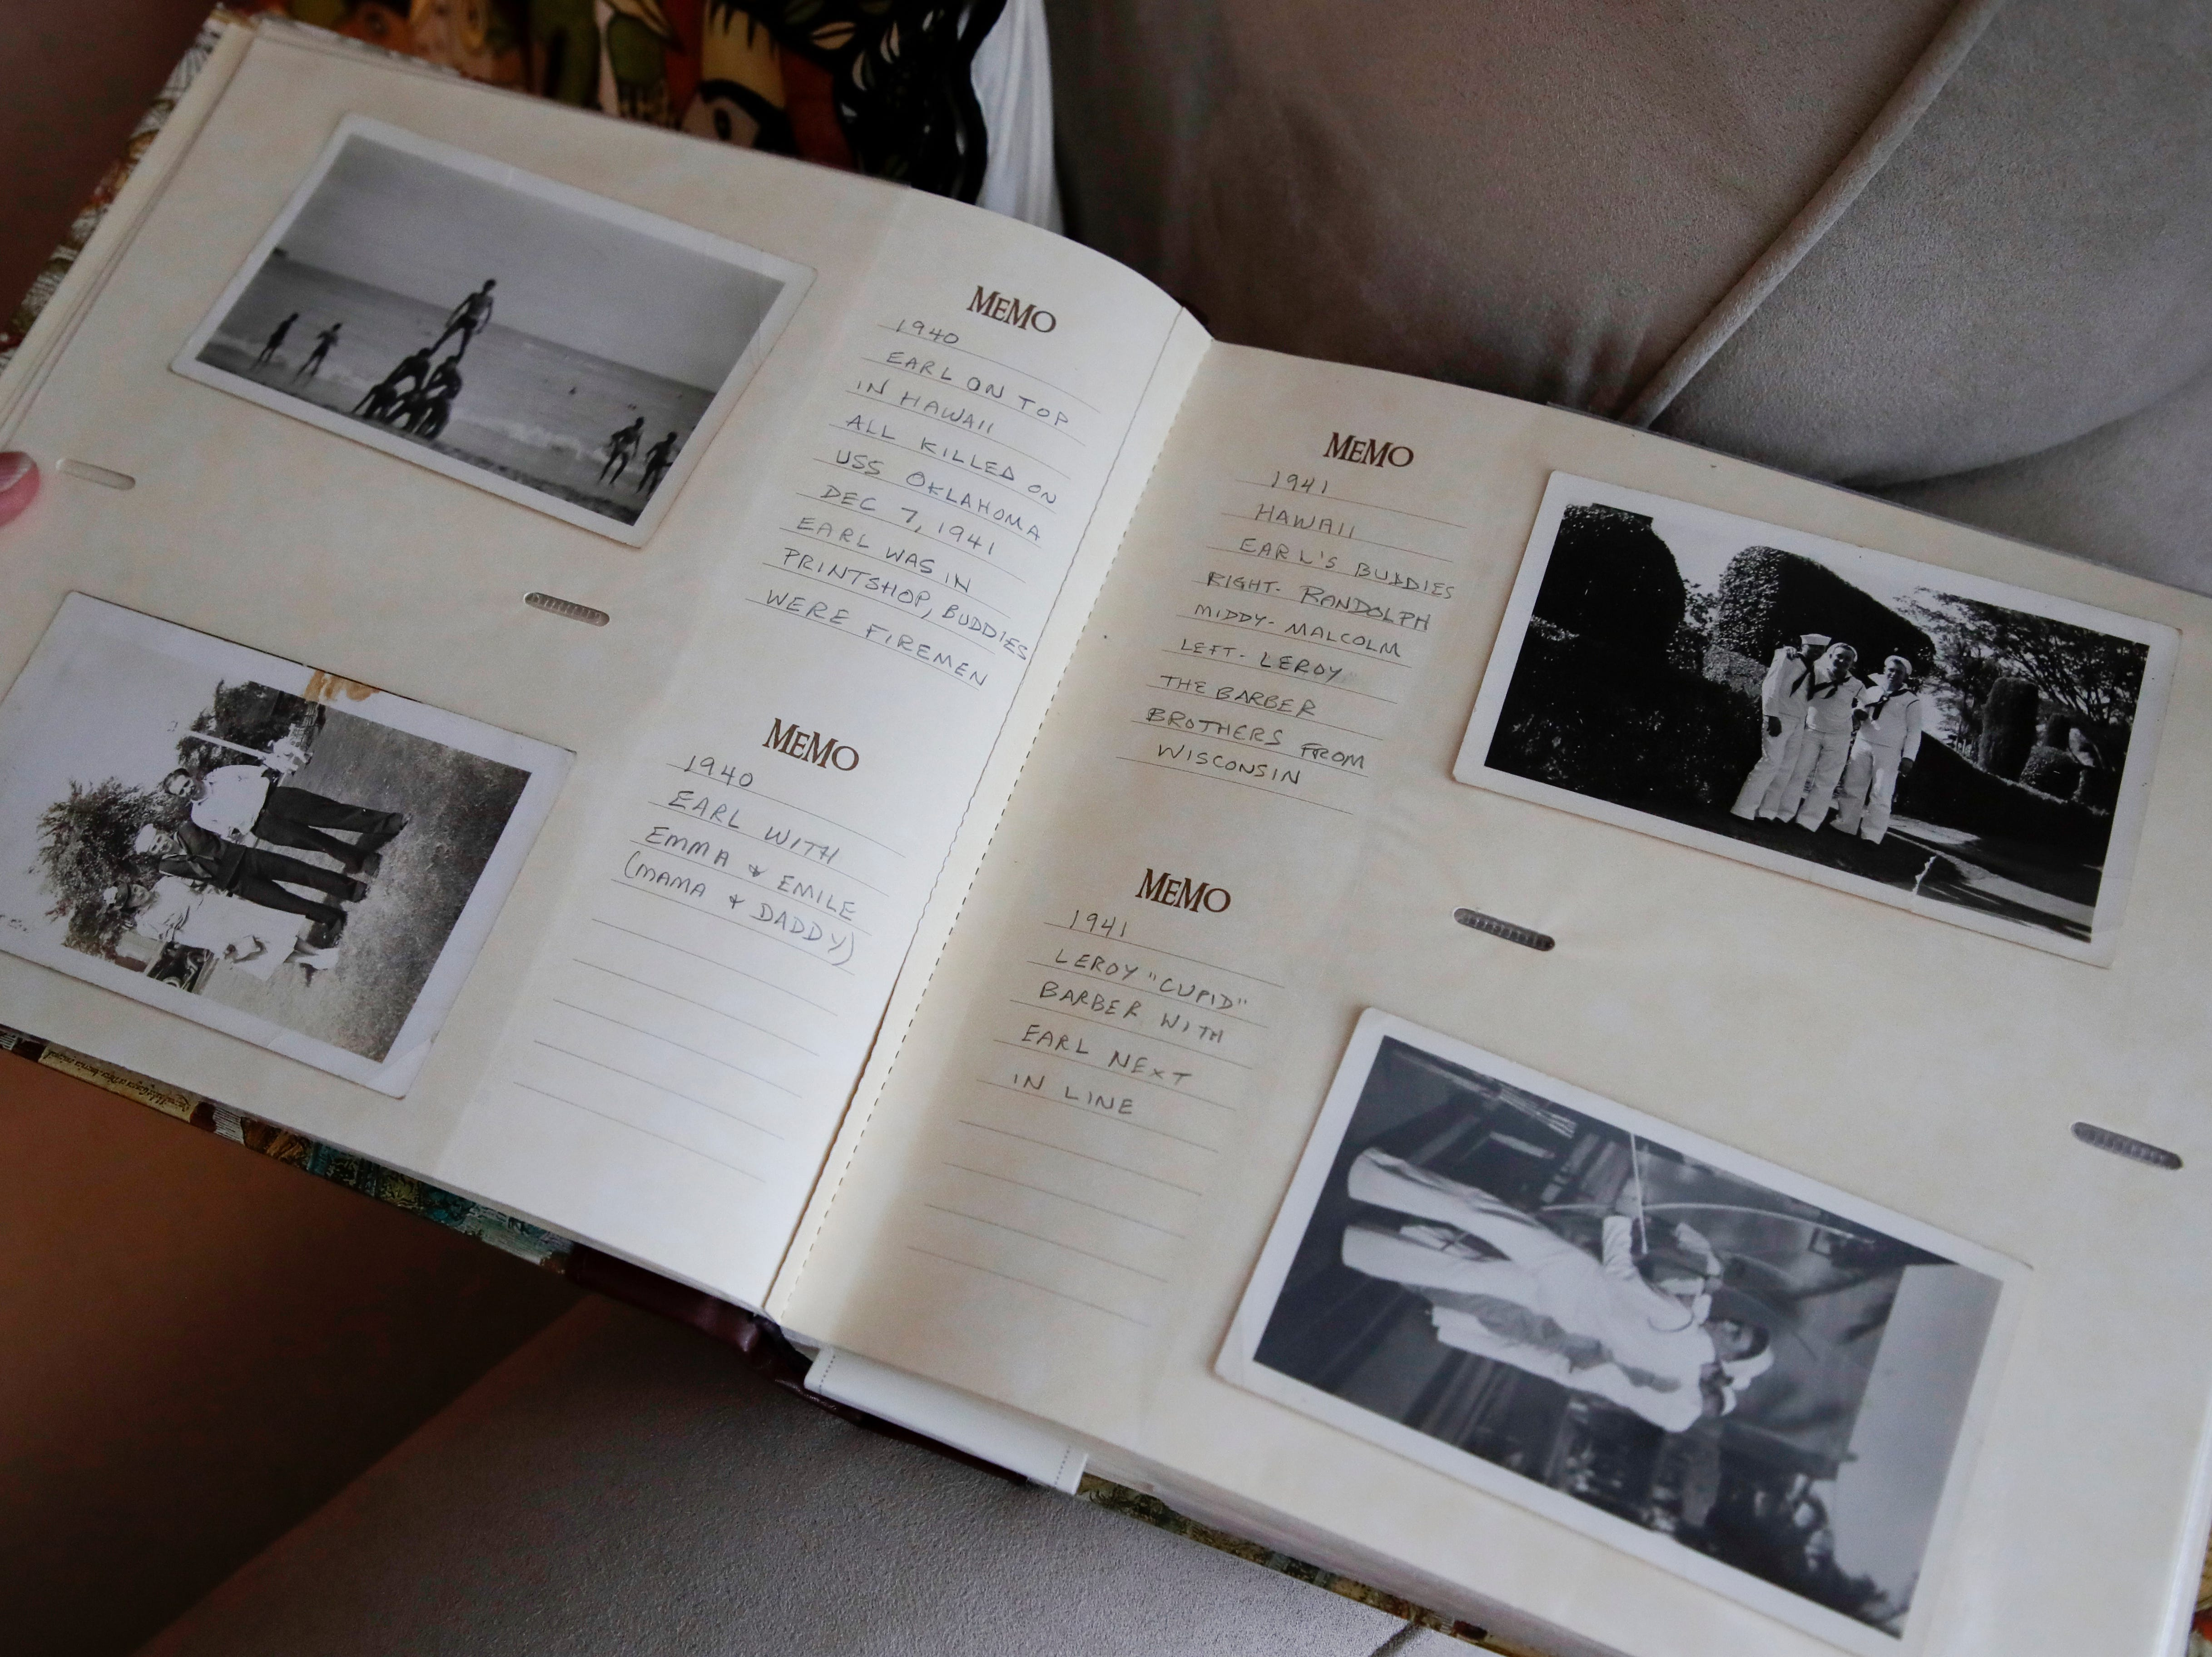 Sandy DeLopez holds a photo album that includes photos of her uncle Earl Baum before he died at Pearl Harbor Dec. 7, 1941.